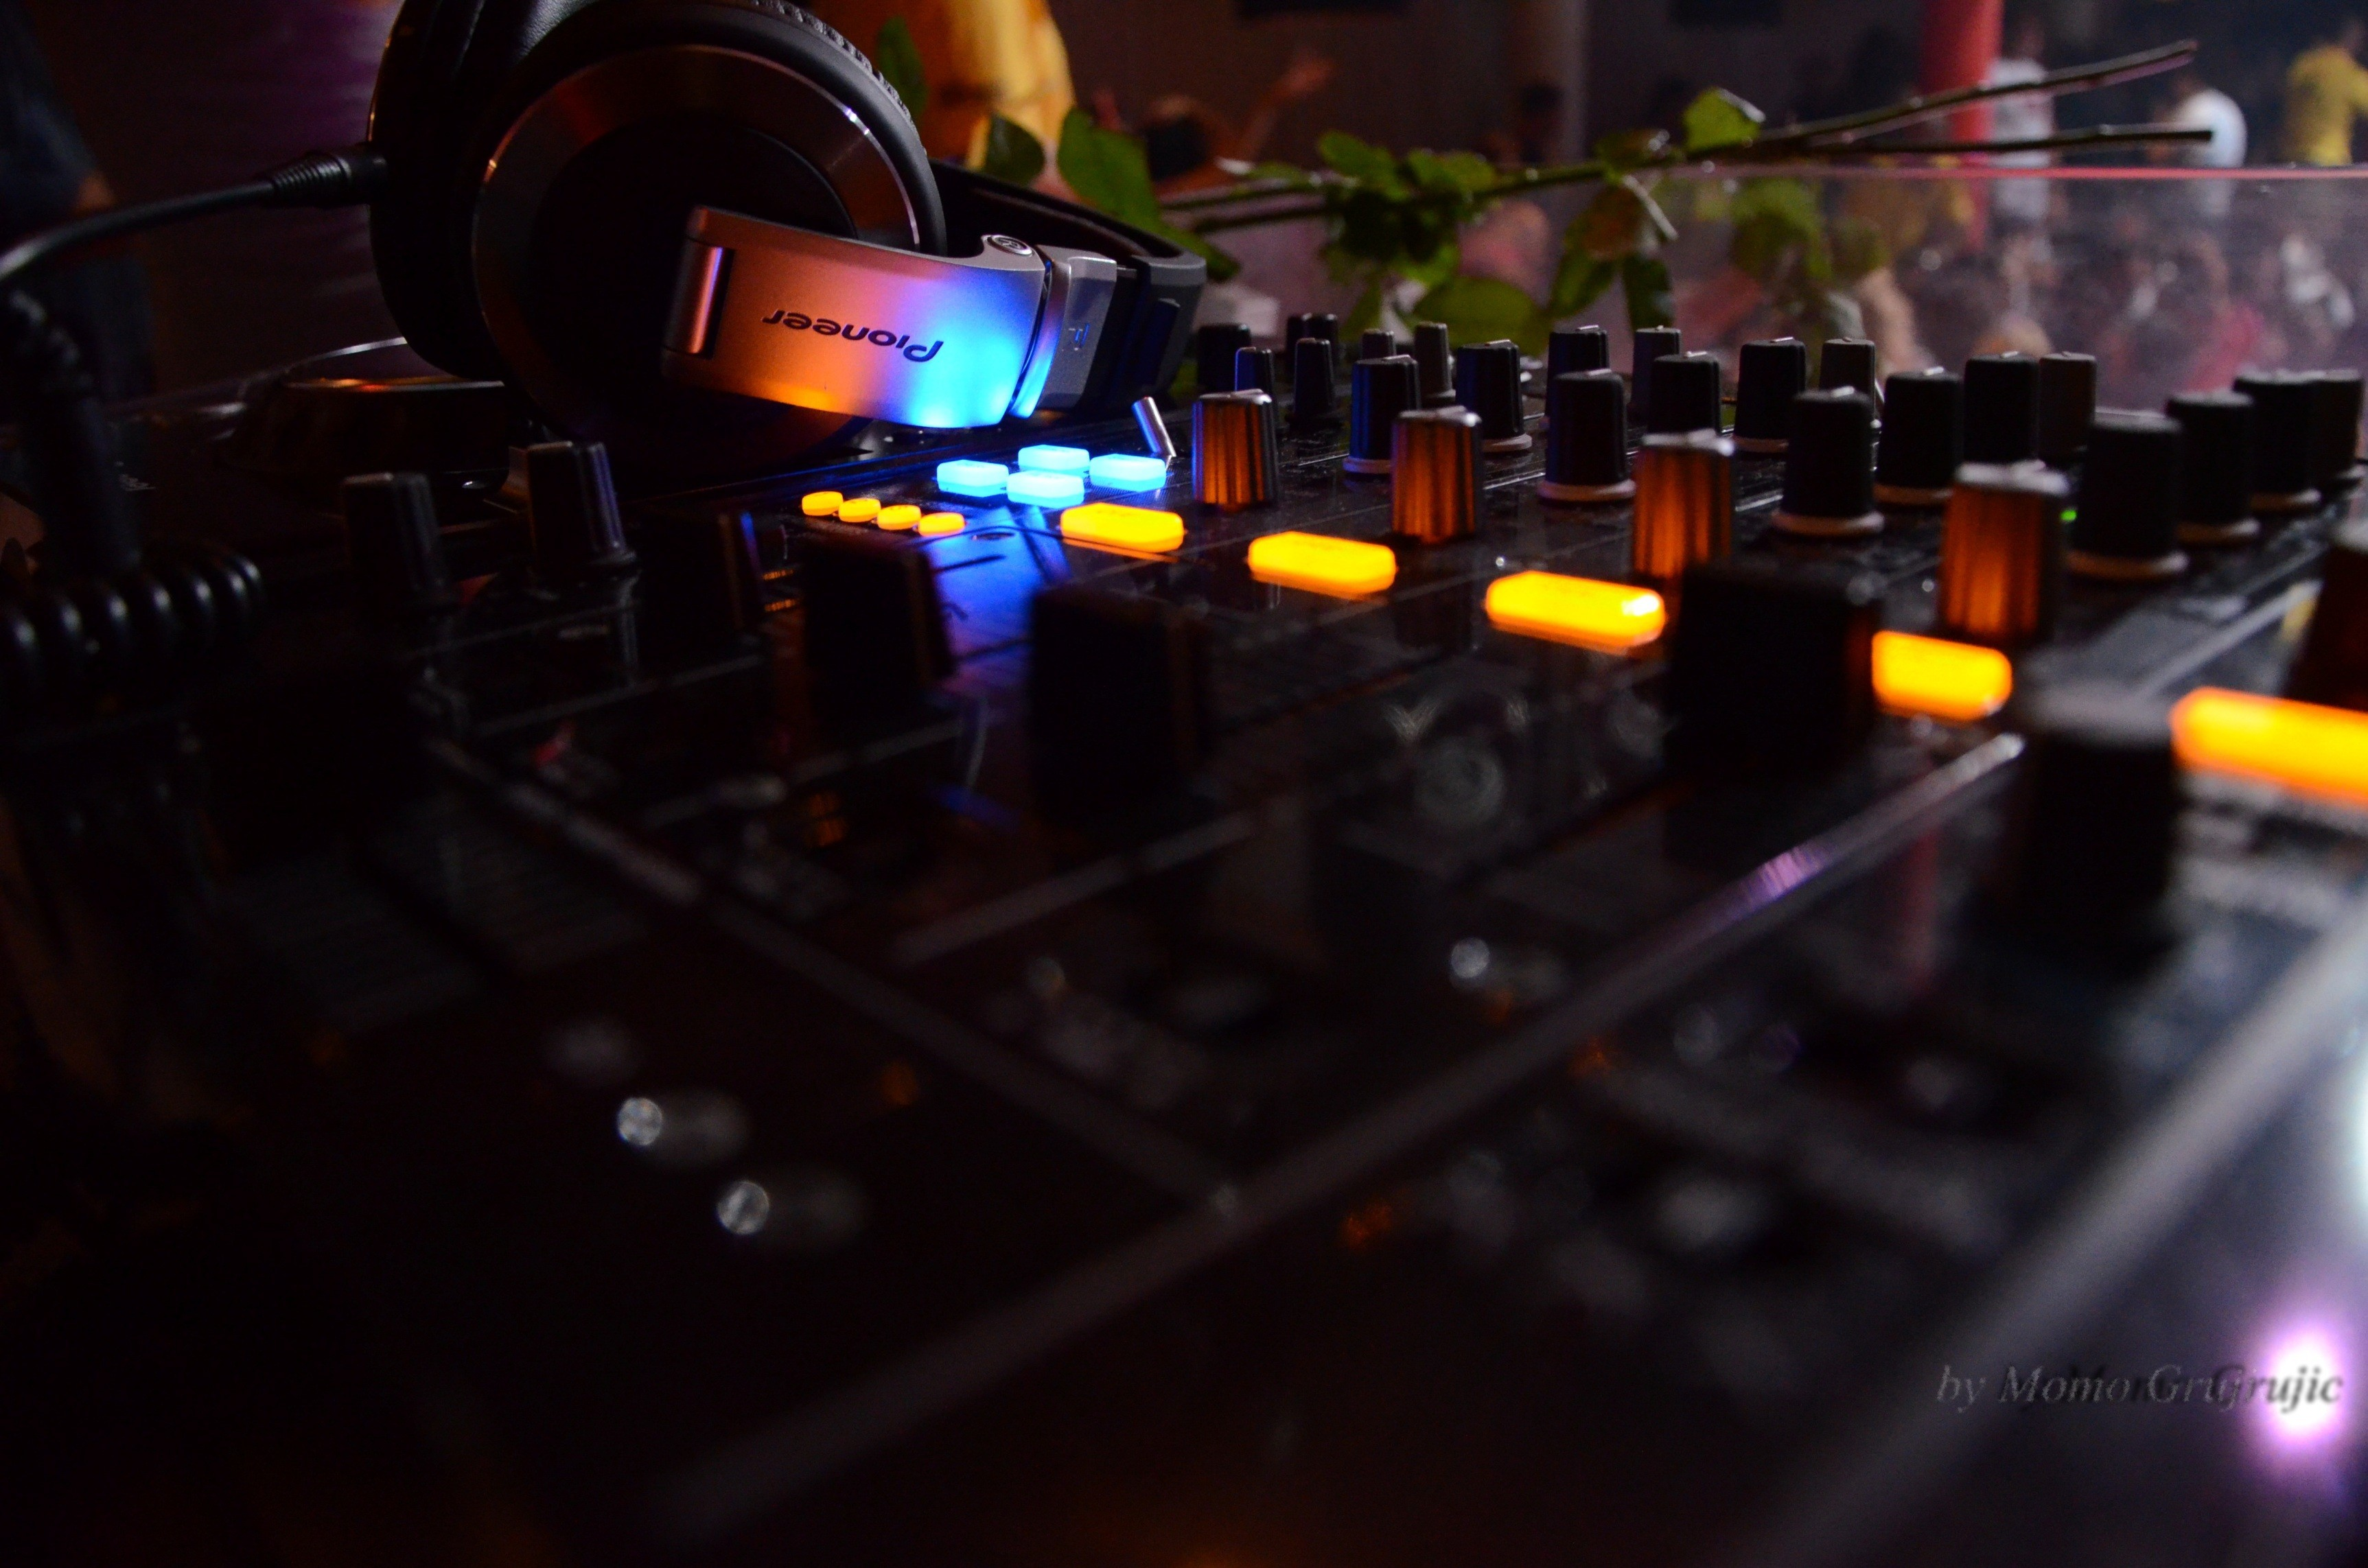 headphones pioneer djm 800